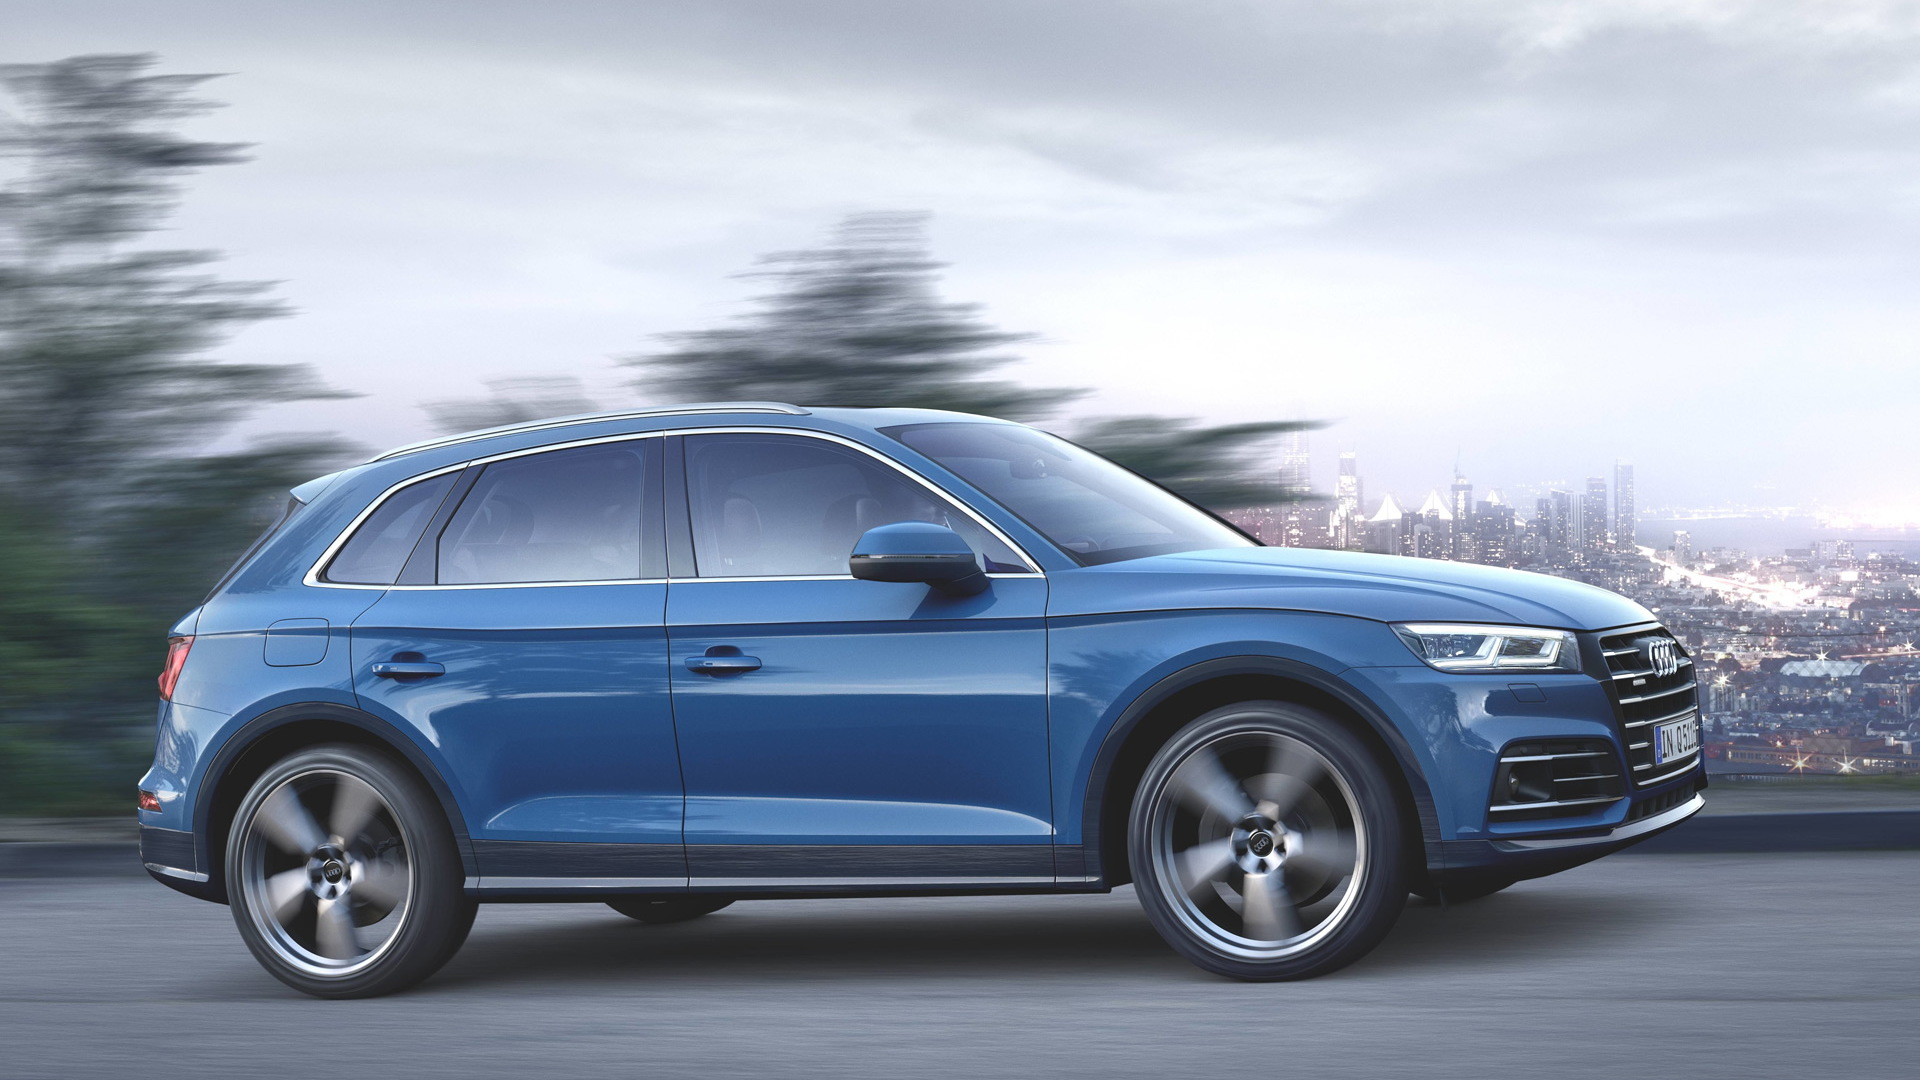 2020 Audi Q5: Plug-in Hybrid, Changes, Release >> 2020 Audi Q5 55 Tfsi Revealed As First Of Audi S Next Gen